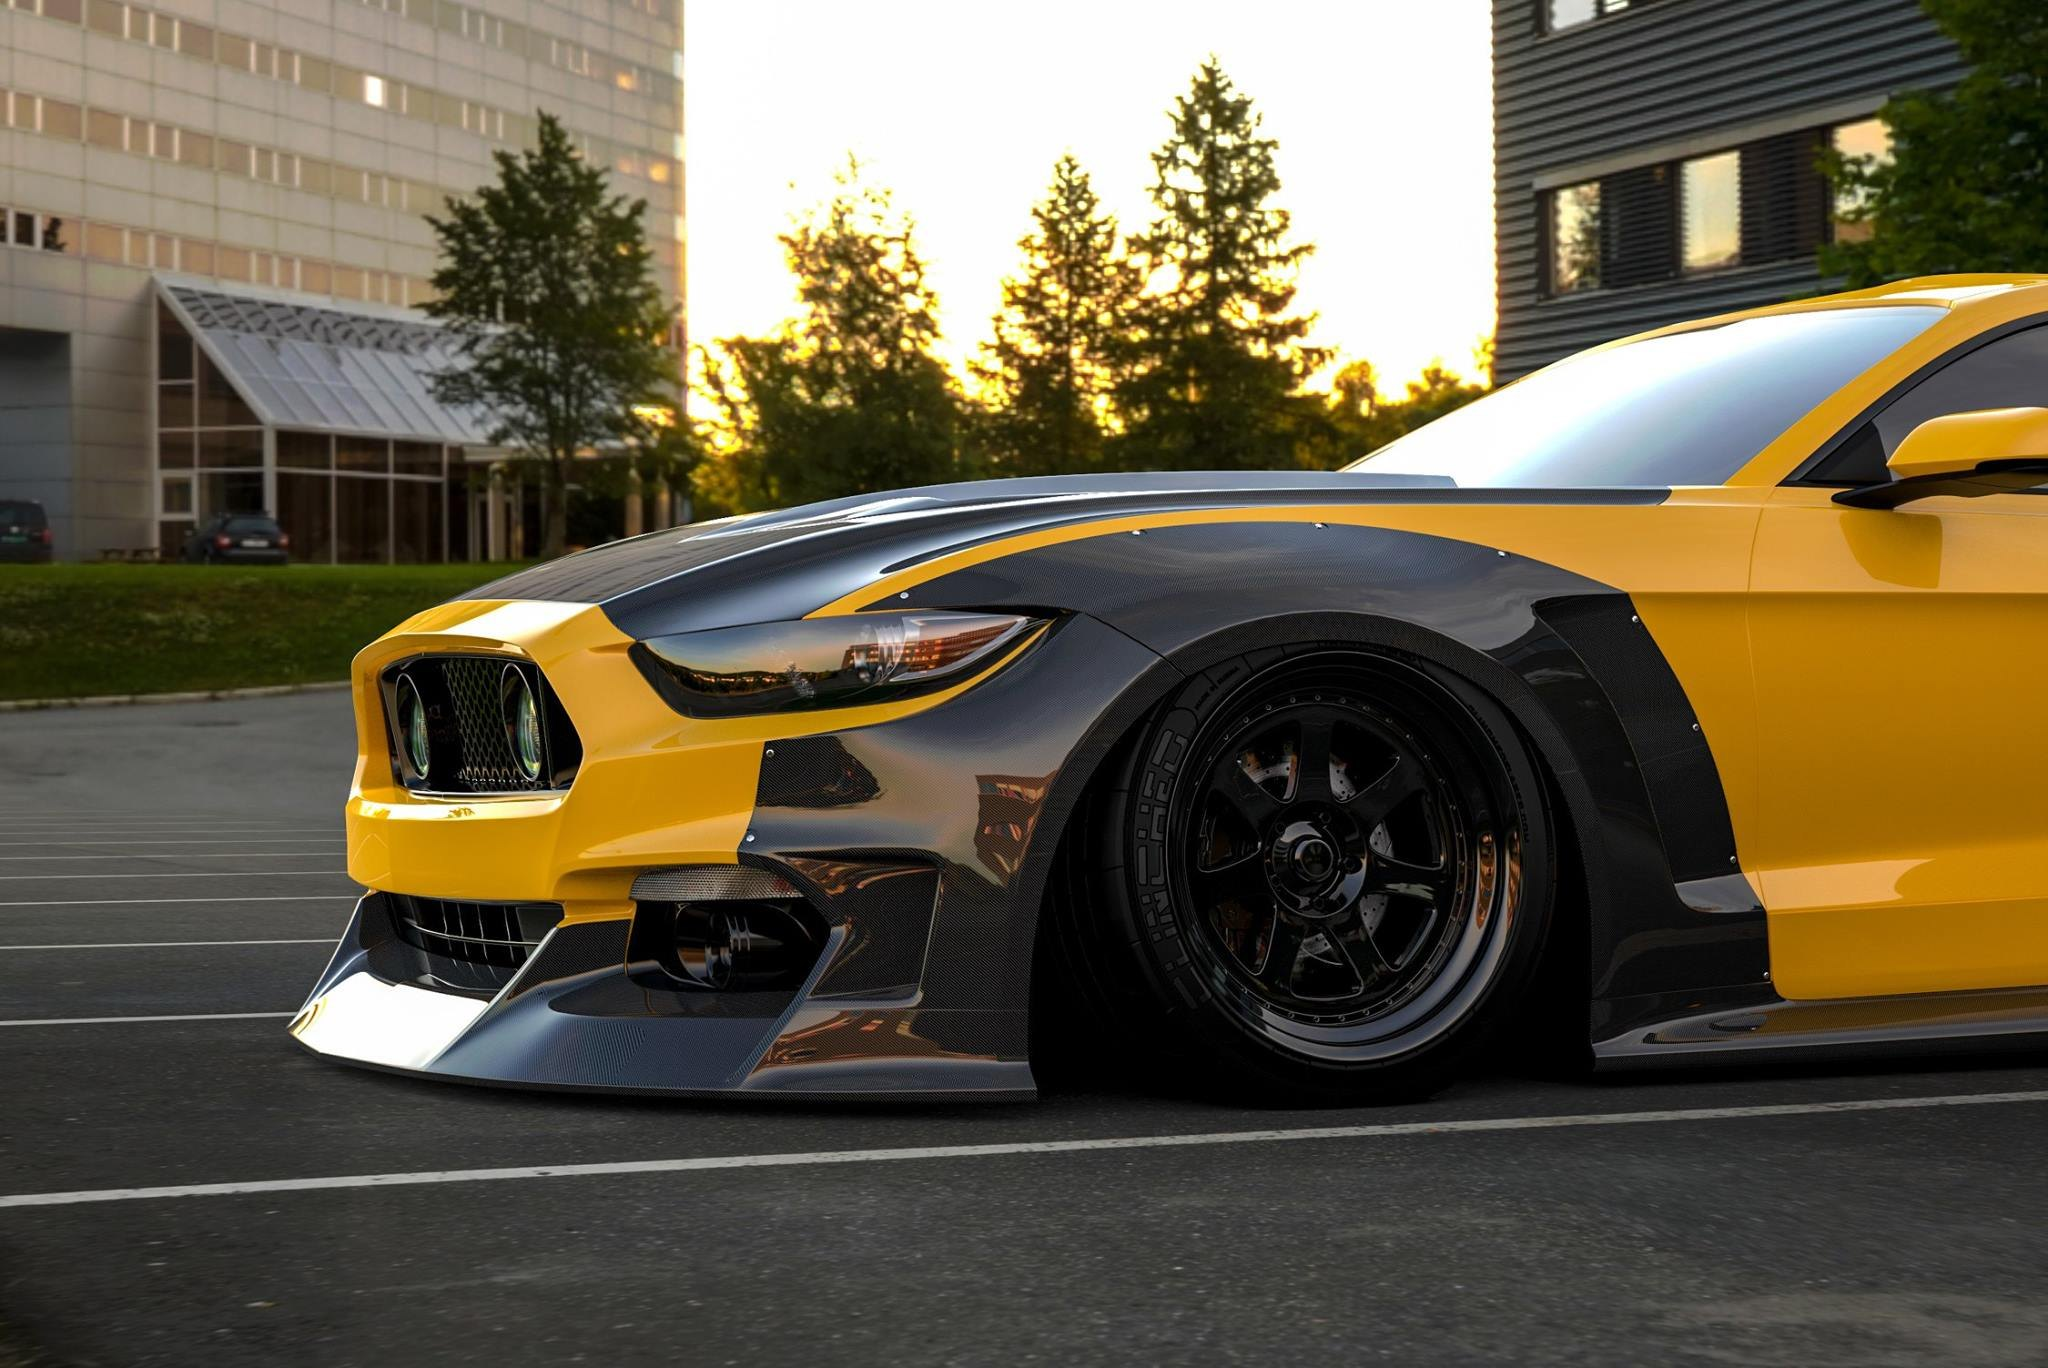 Carbon Fiber Front Bumper on Yellow Ford Mustang - Photo by Clinched